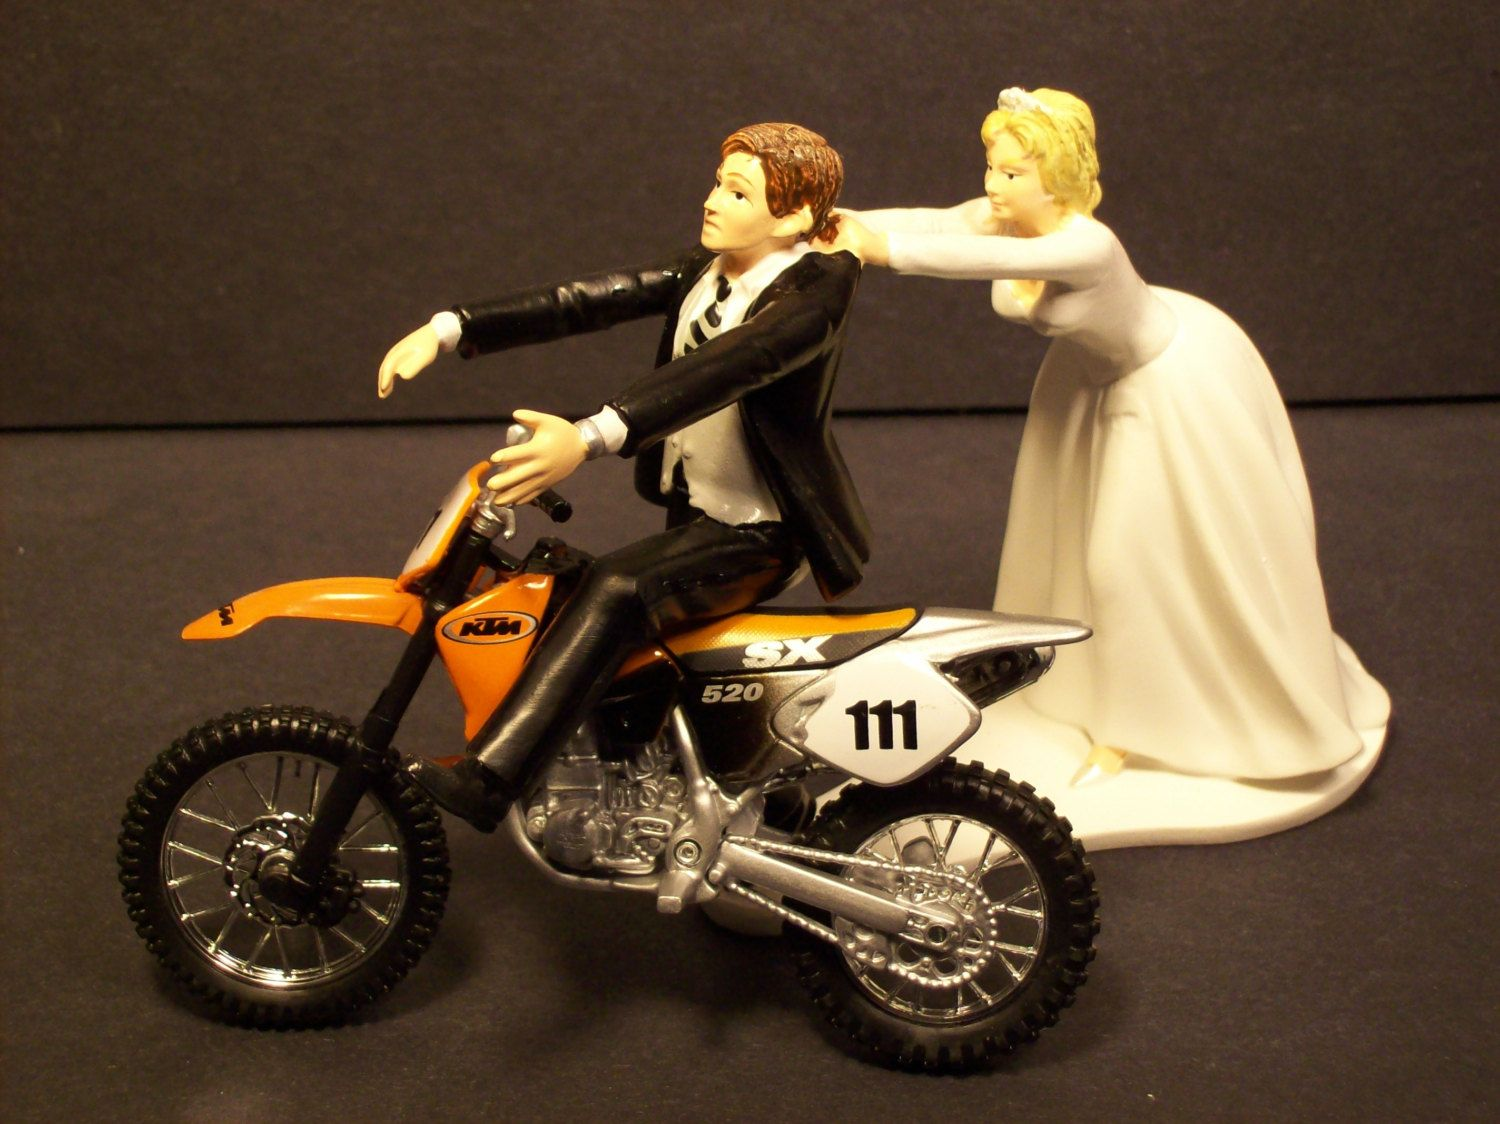 come back motorcycle ktm orange 520 sx dirt bike bride and groom funny bike wedding cake topper 67 99 via etsy  [ 1500 x 1124 Pixel ]